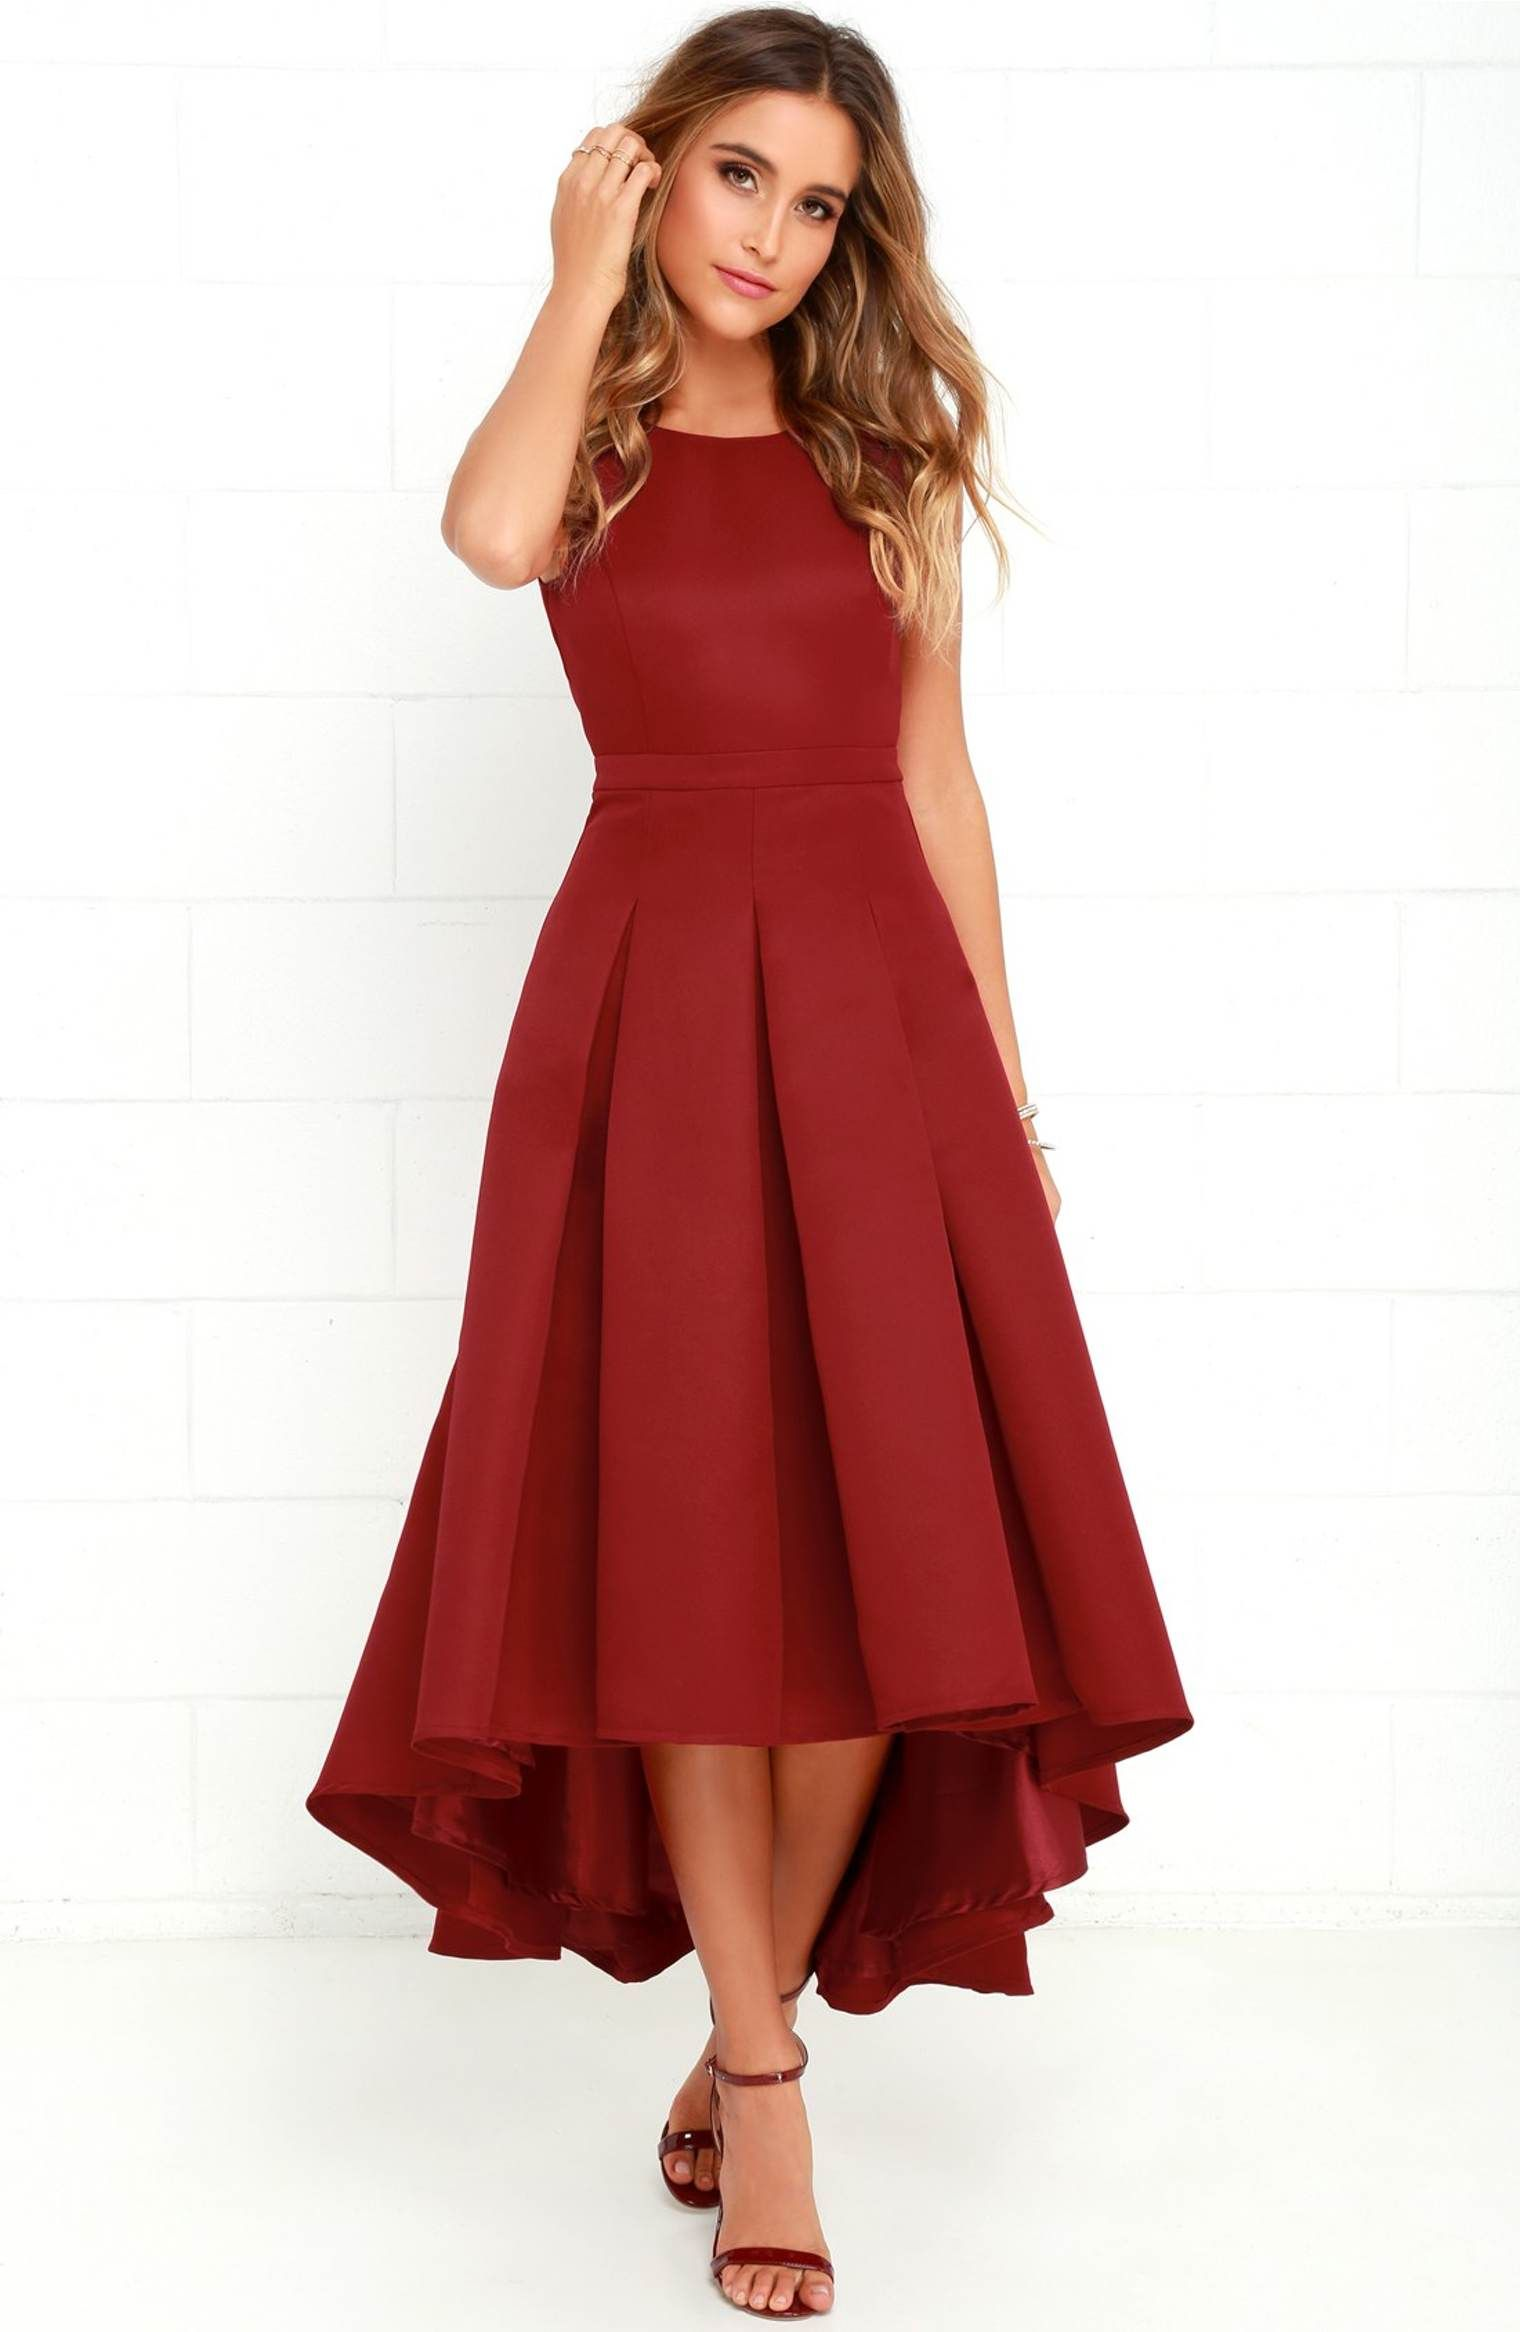 Main image lulus cutout back tea length highlow dress gala when you pass by in the paso doble take wine red high low dress heads will always turn sleeveless dress has an open back and pleated high low skirt ombrellifo Gallery